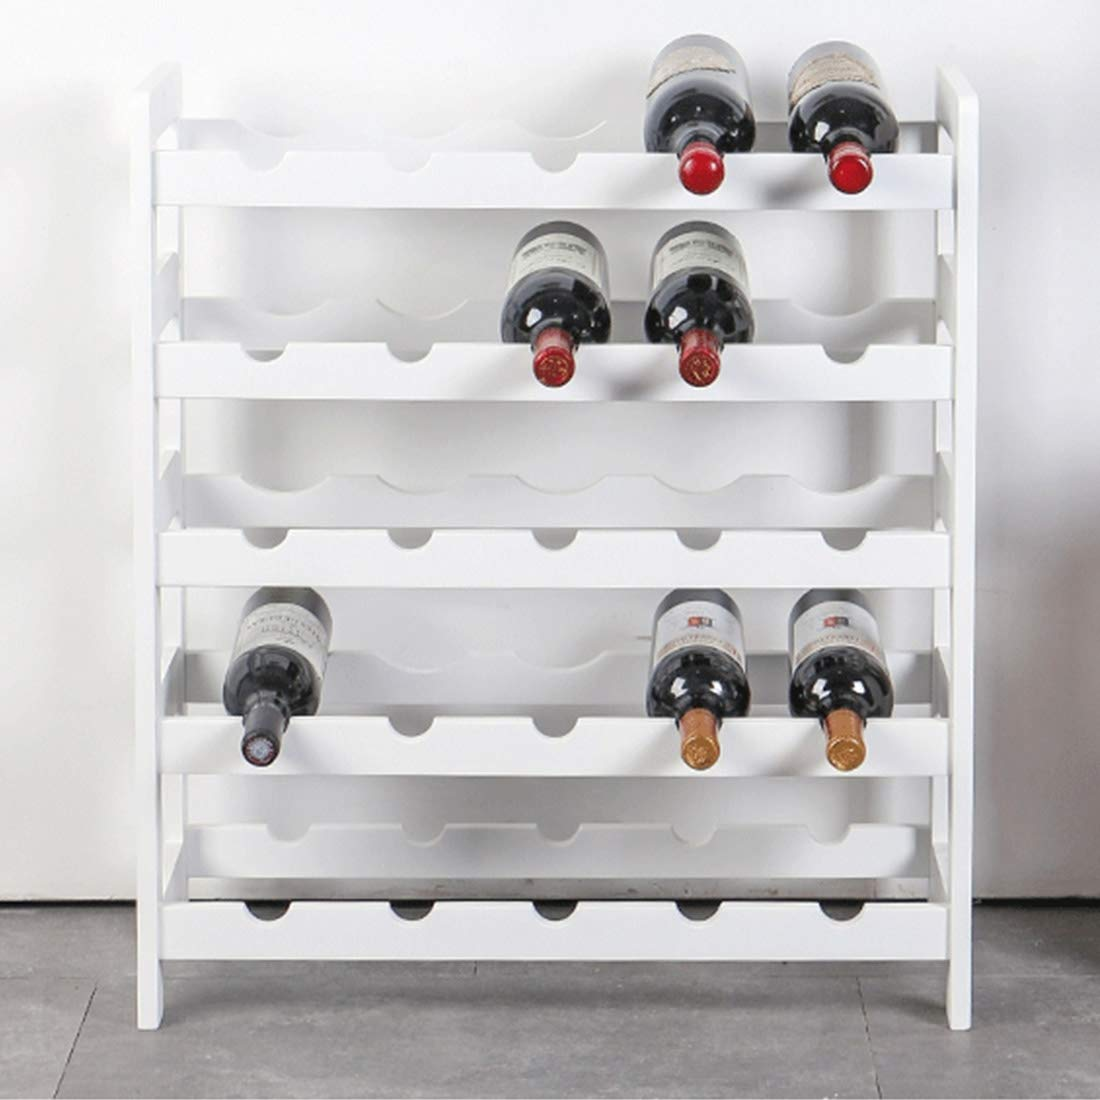 Songlin@yuan European Simple Wooden Multi-Layer Solid Wood Wine Rack Display Stand, Restaurant Wine Cabinet Wine Rack práctico